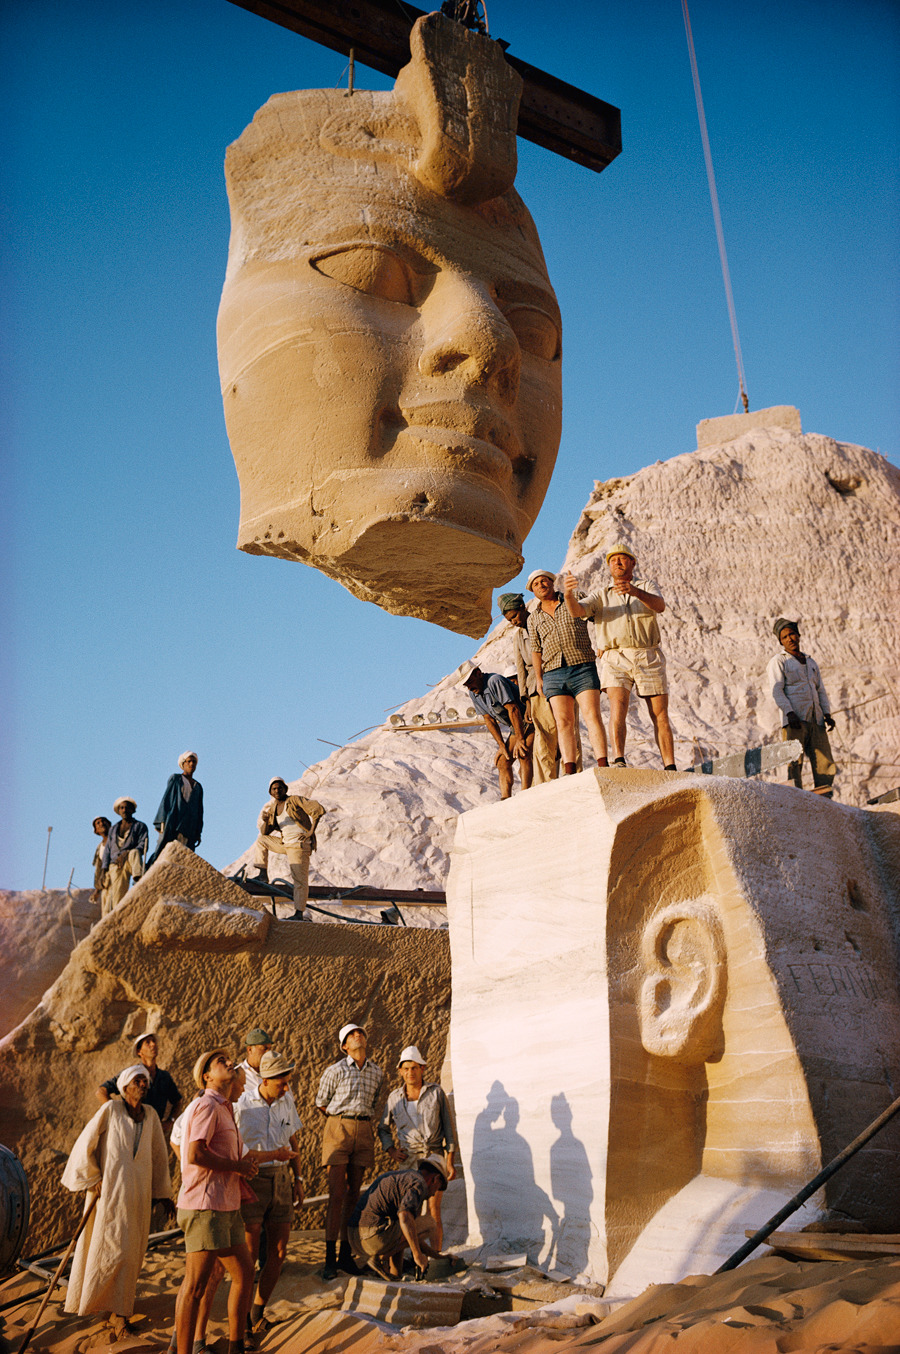 Cranes lift the face of a statue from the Abu Simbel Temples in Egypt, May 1966.Photograph by Georg Gerster, National Geographic